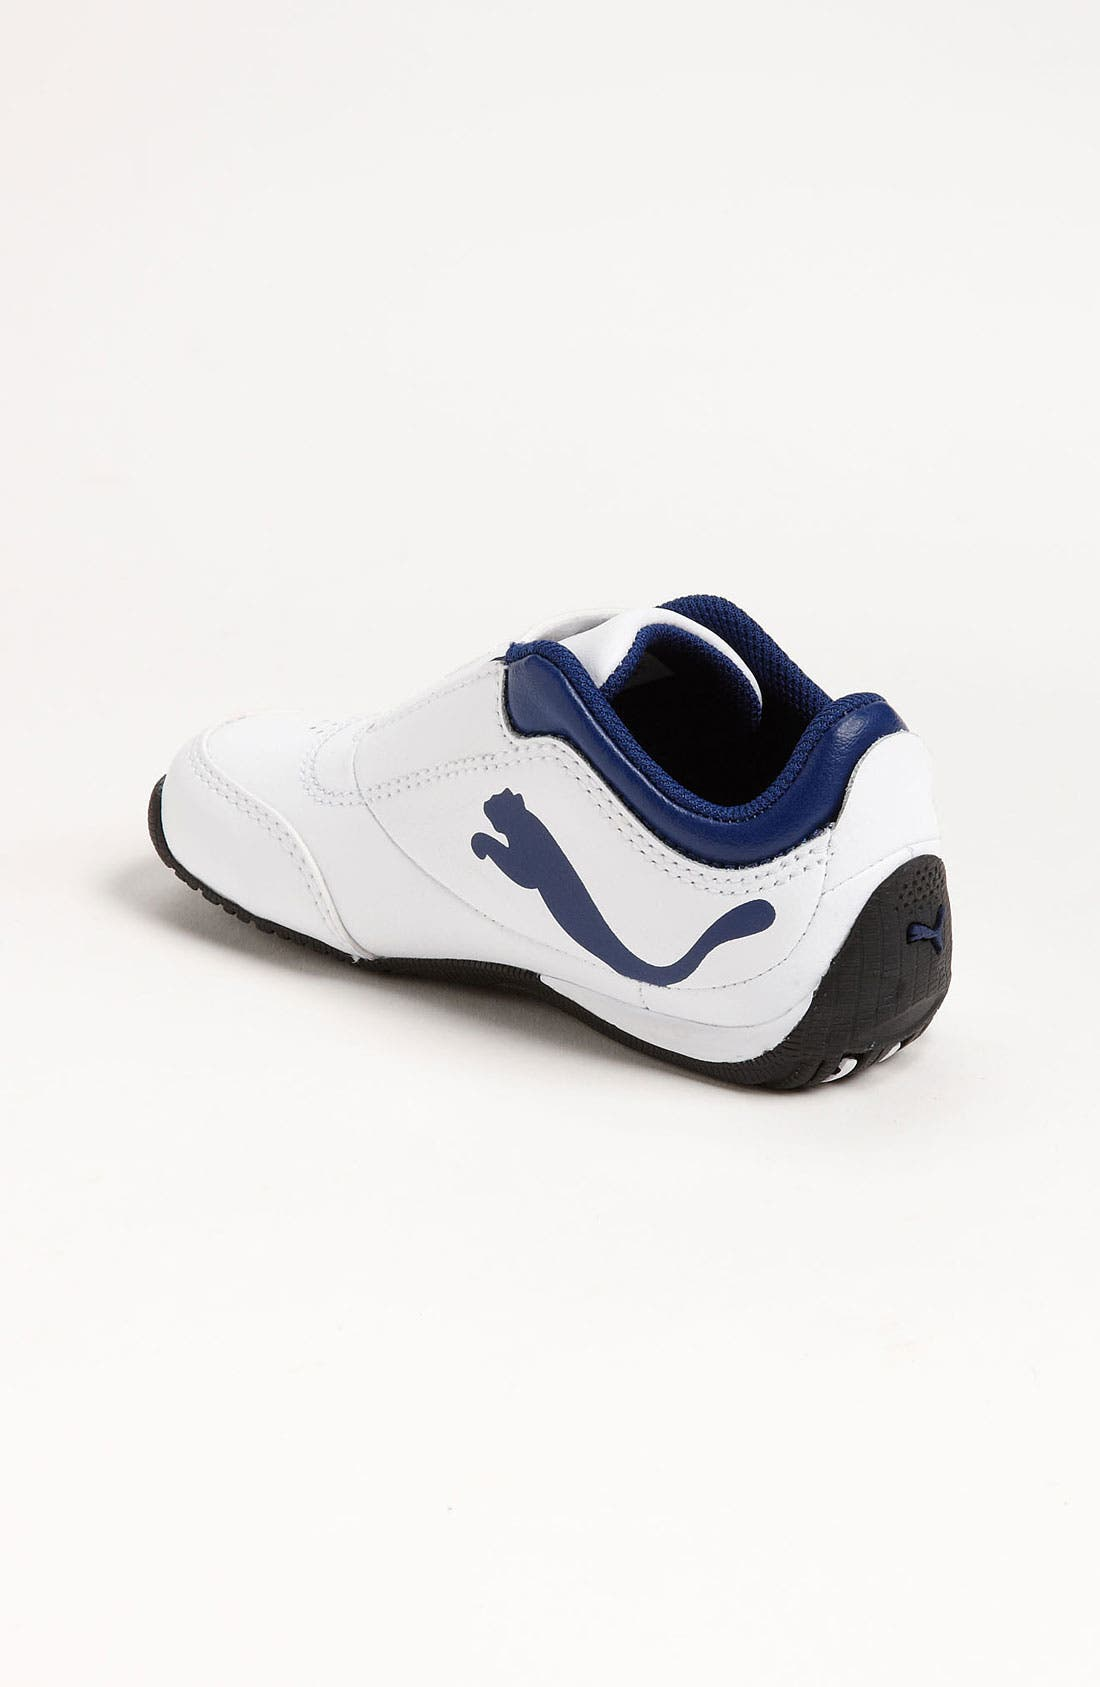 Alternate Image 2  - PUMA 'Drift Cat 4' Sneaker (Baby, Walker, Toddler, Little Kid & Big Kid)